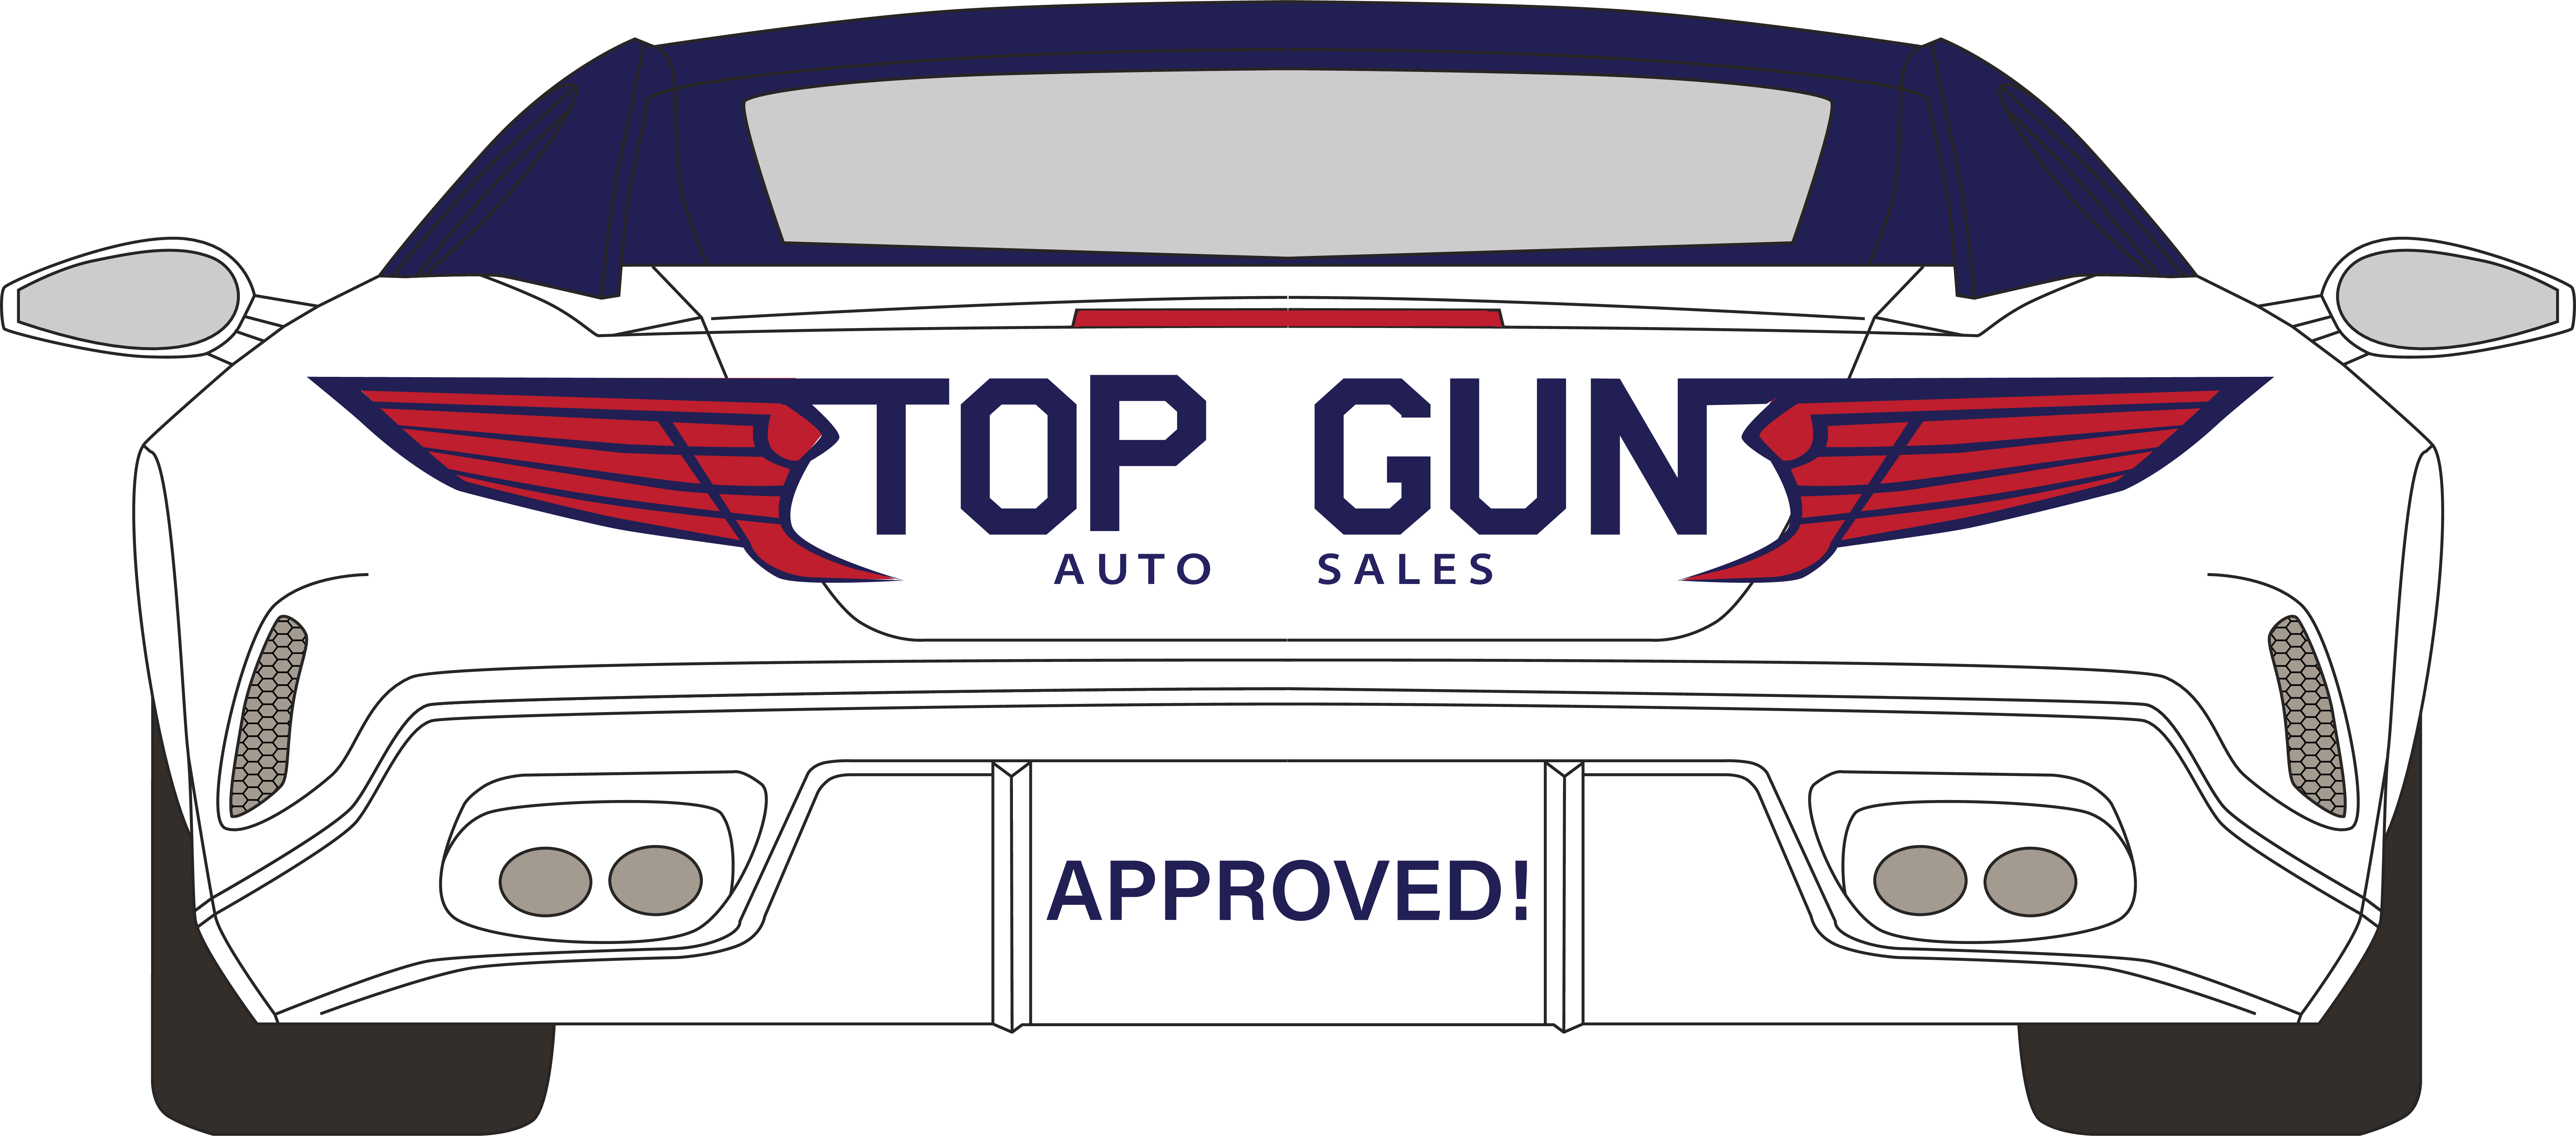 Top Gun Auto Sales